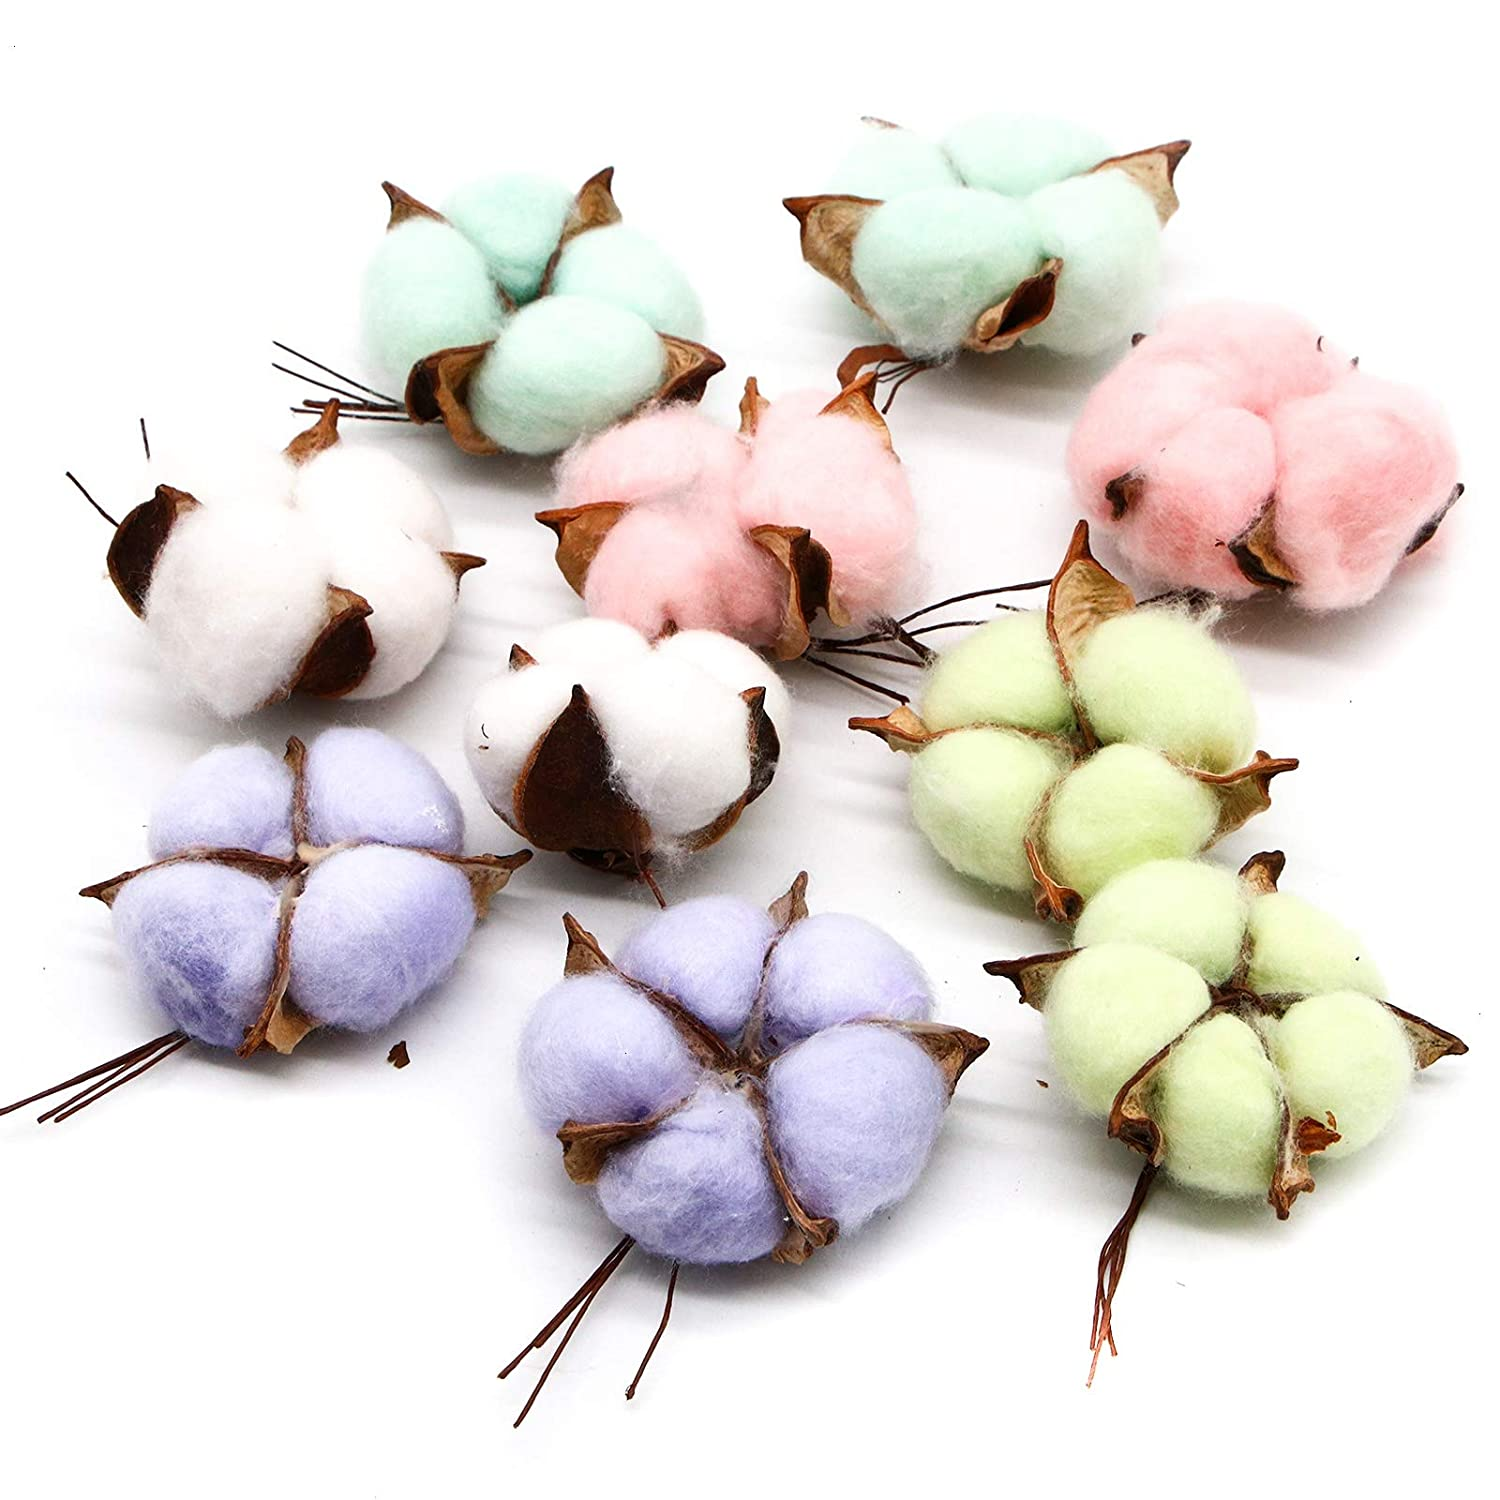 WSSROGY 10 Pcs Natural and Synthetic Bend Dried Cotton Bolls Colorful Cotton Balls for Crafting Farmhouse Style